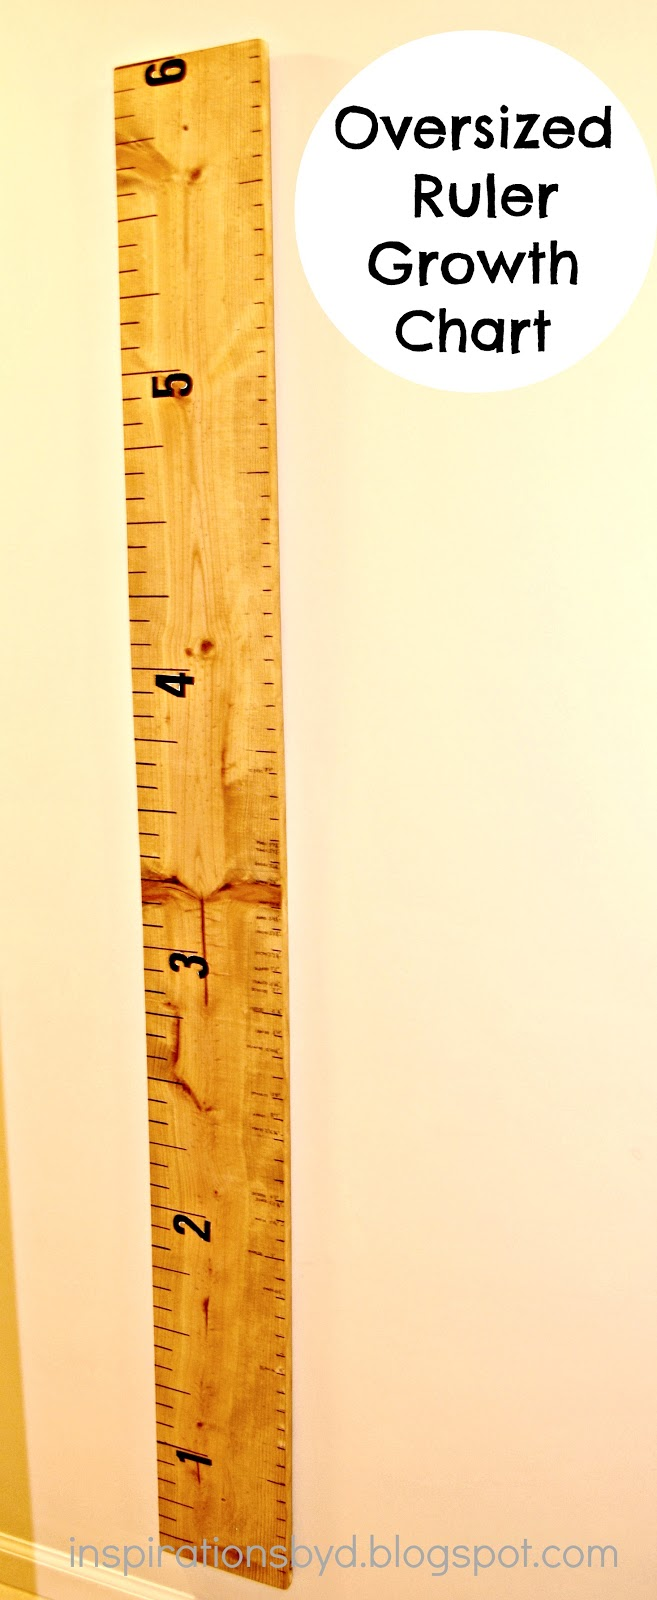 Inspirations by d oversized ruler growth chart how to make ruler growth chart nvjuhfo Gallery